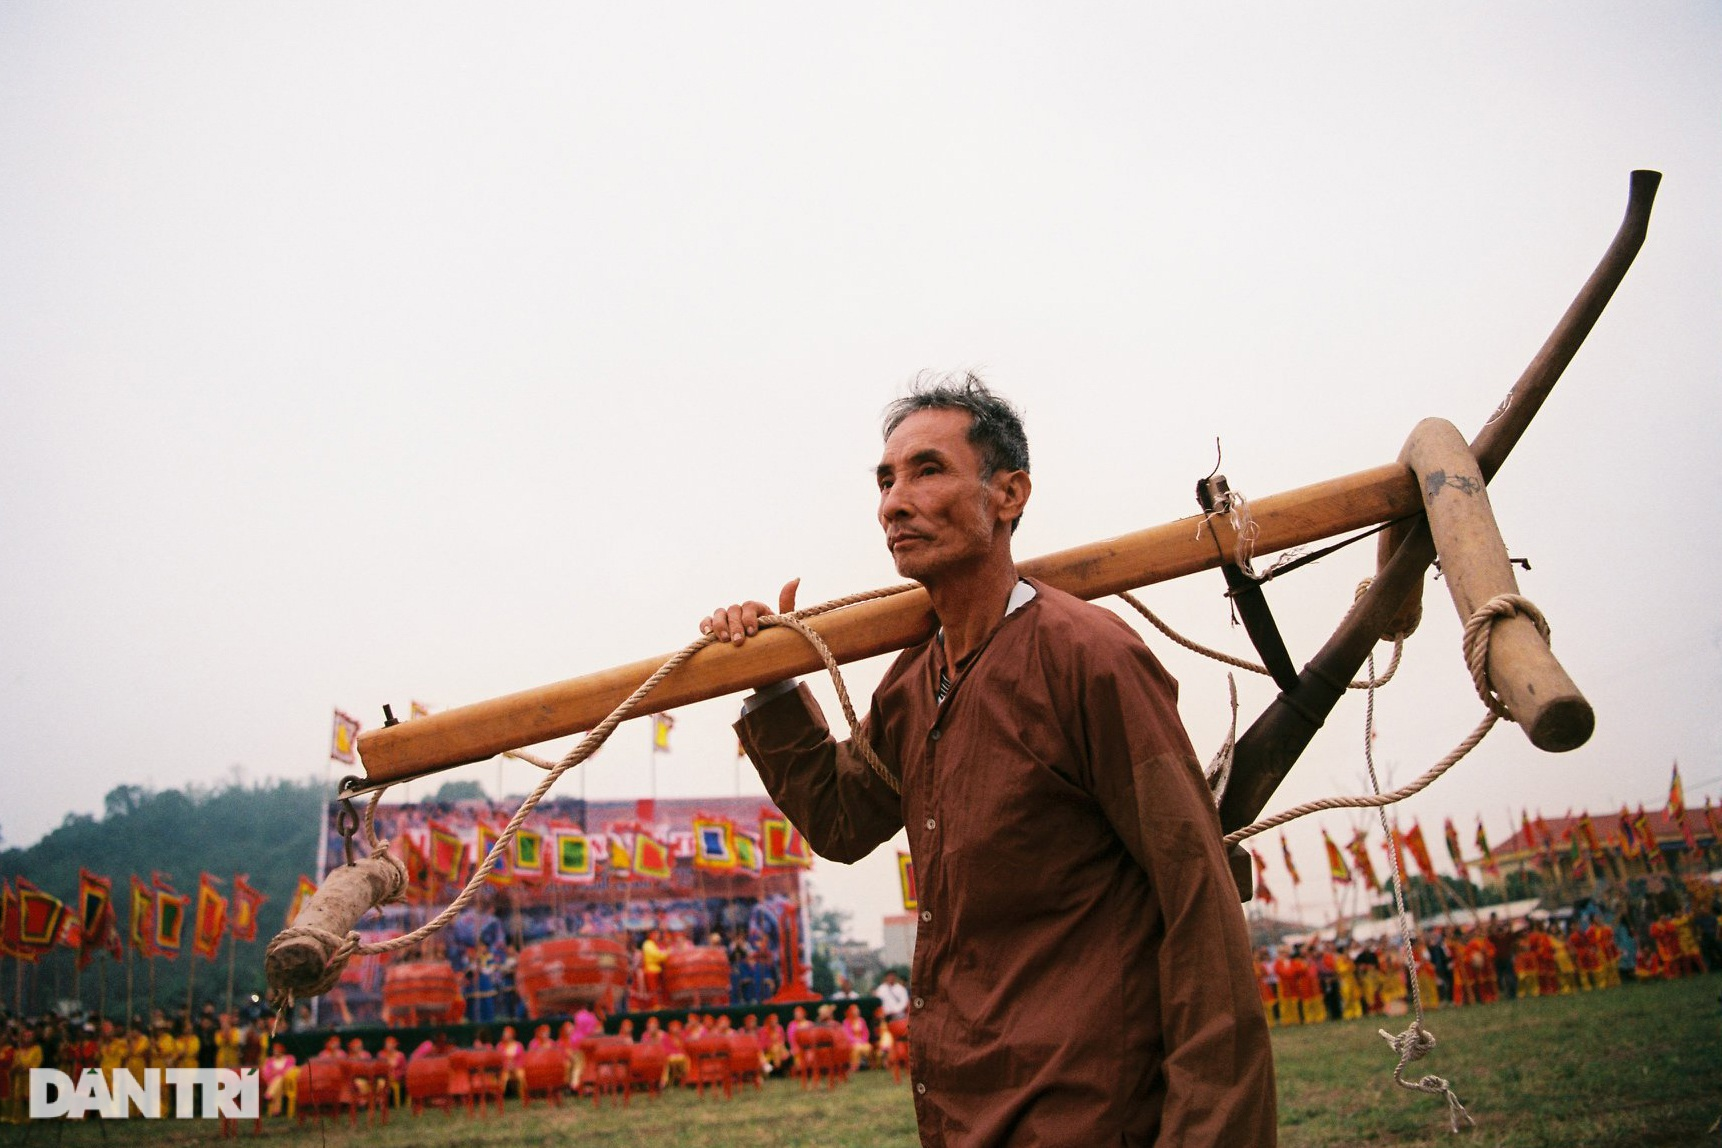 See the most beautiful festival in five buffaloes but be canceled due to the Covid-19-5 epidemic